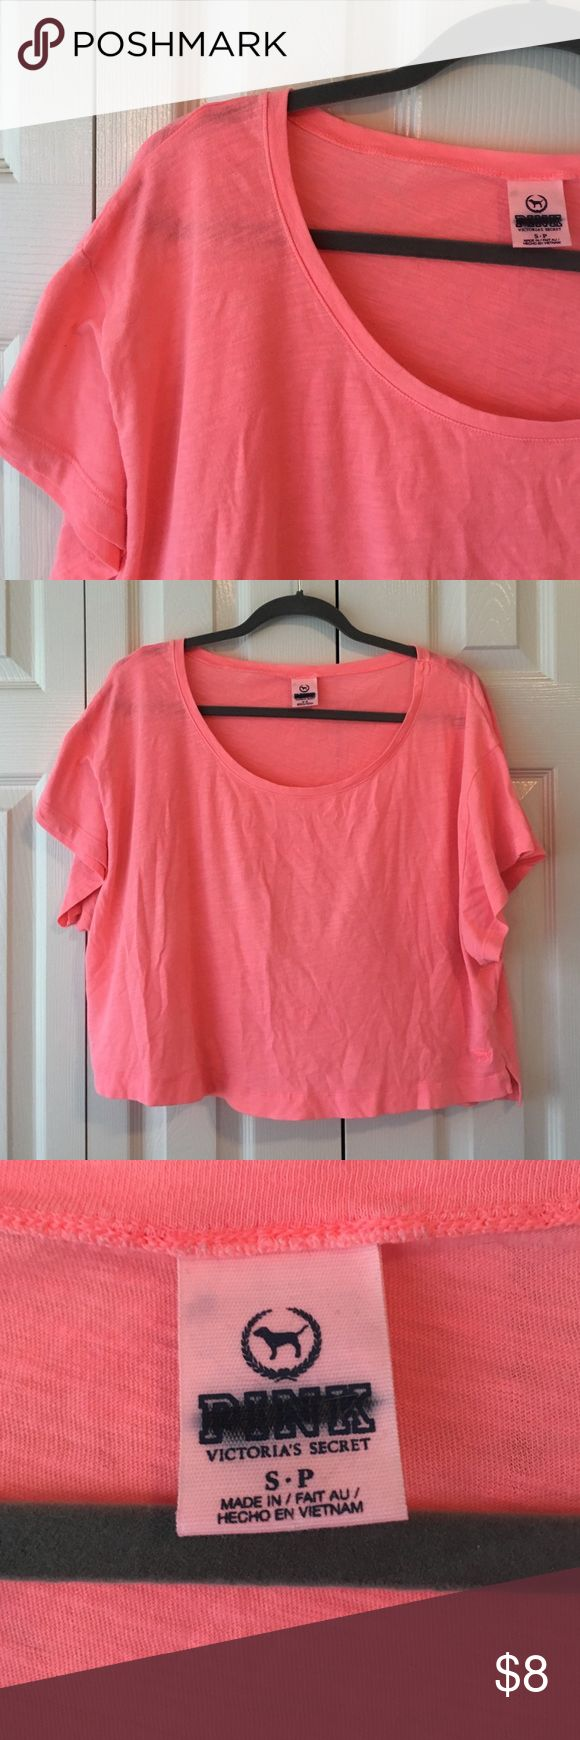 ❣BOGO❣ VS PINK Boxy Crop Top Small neon coral boxy crop tee (from the outlet so label is blacked out). PINK Victoria's Secret Tops Tees - Short Sleeve